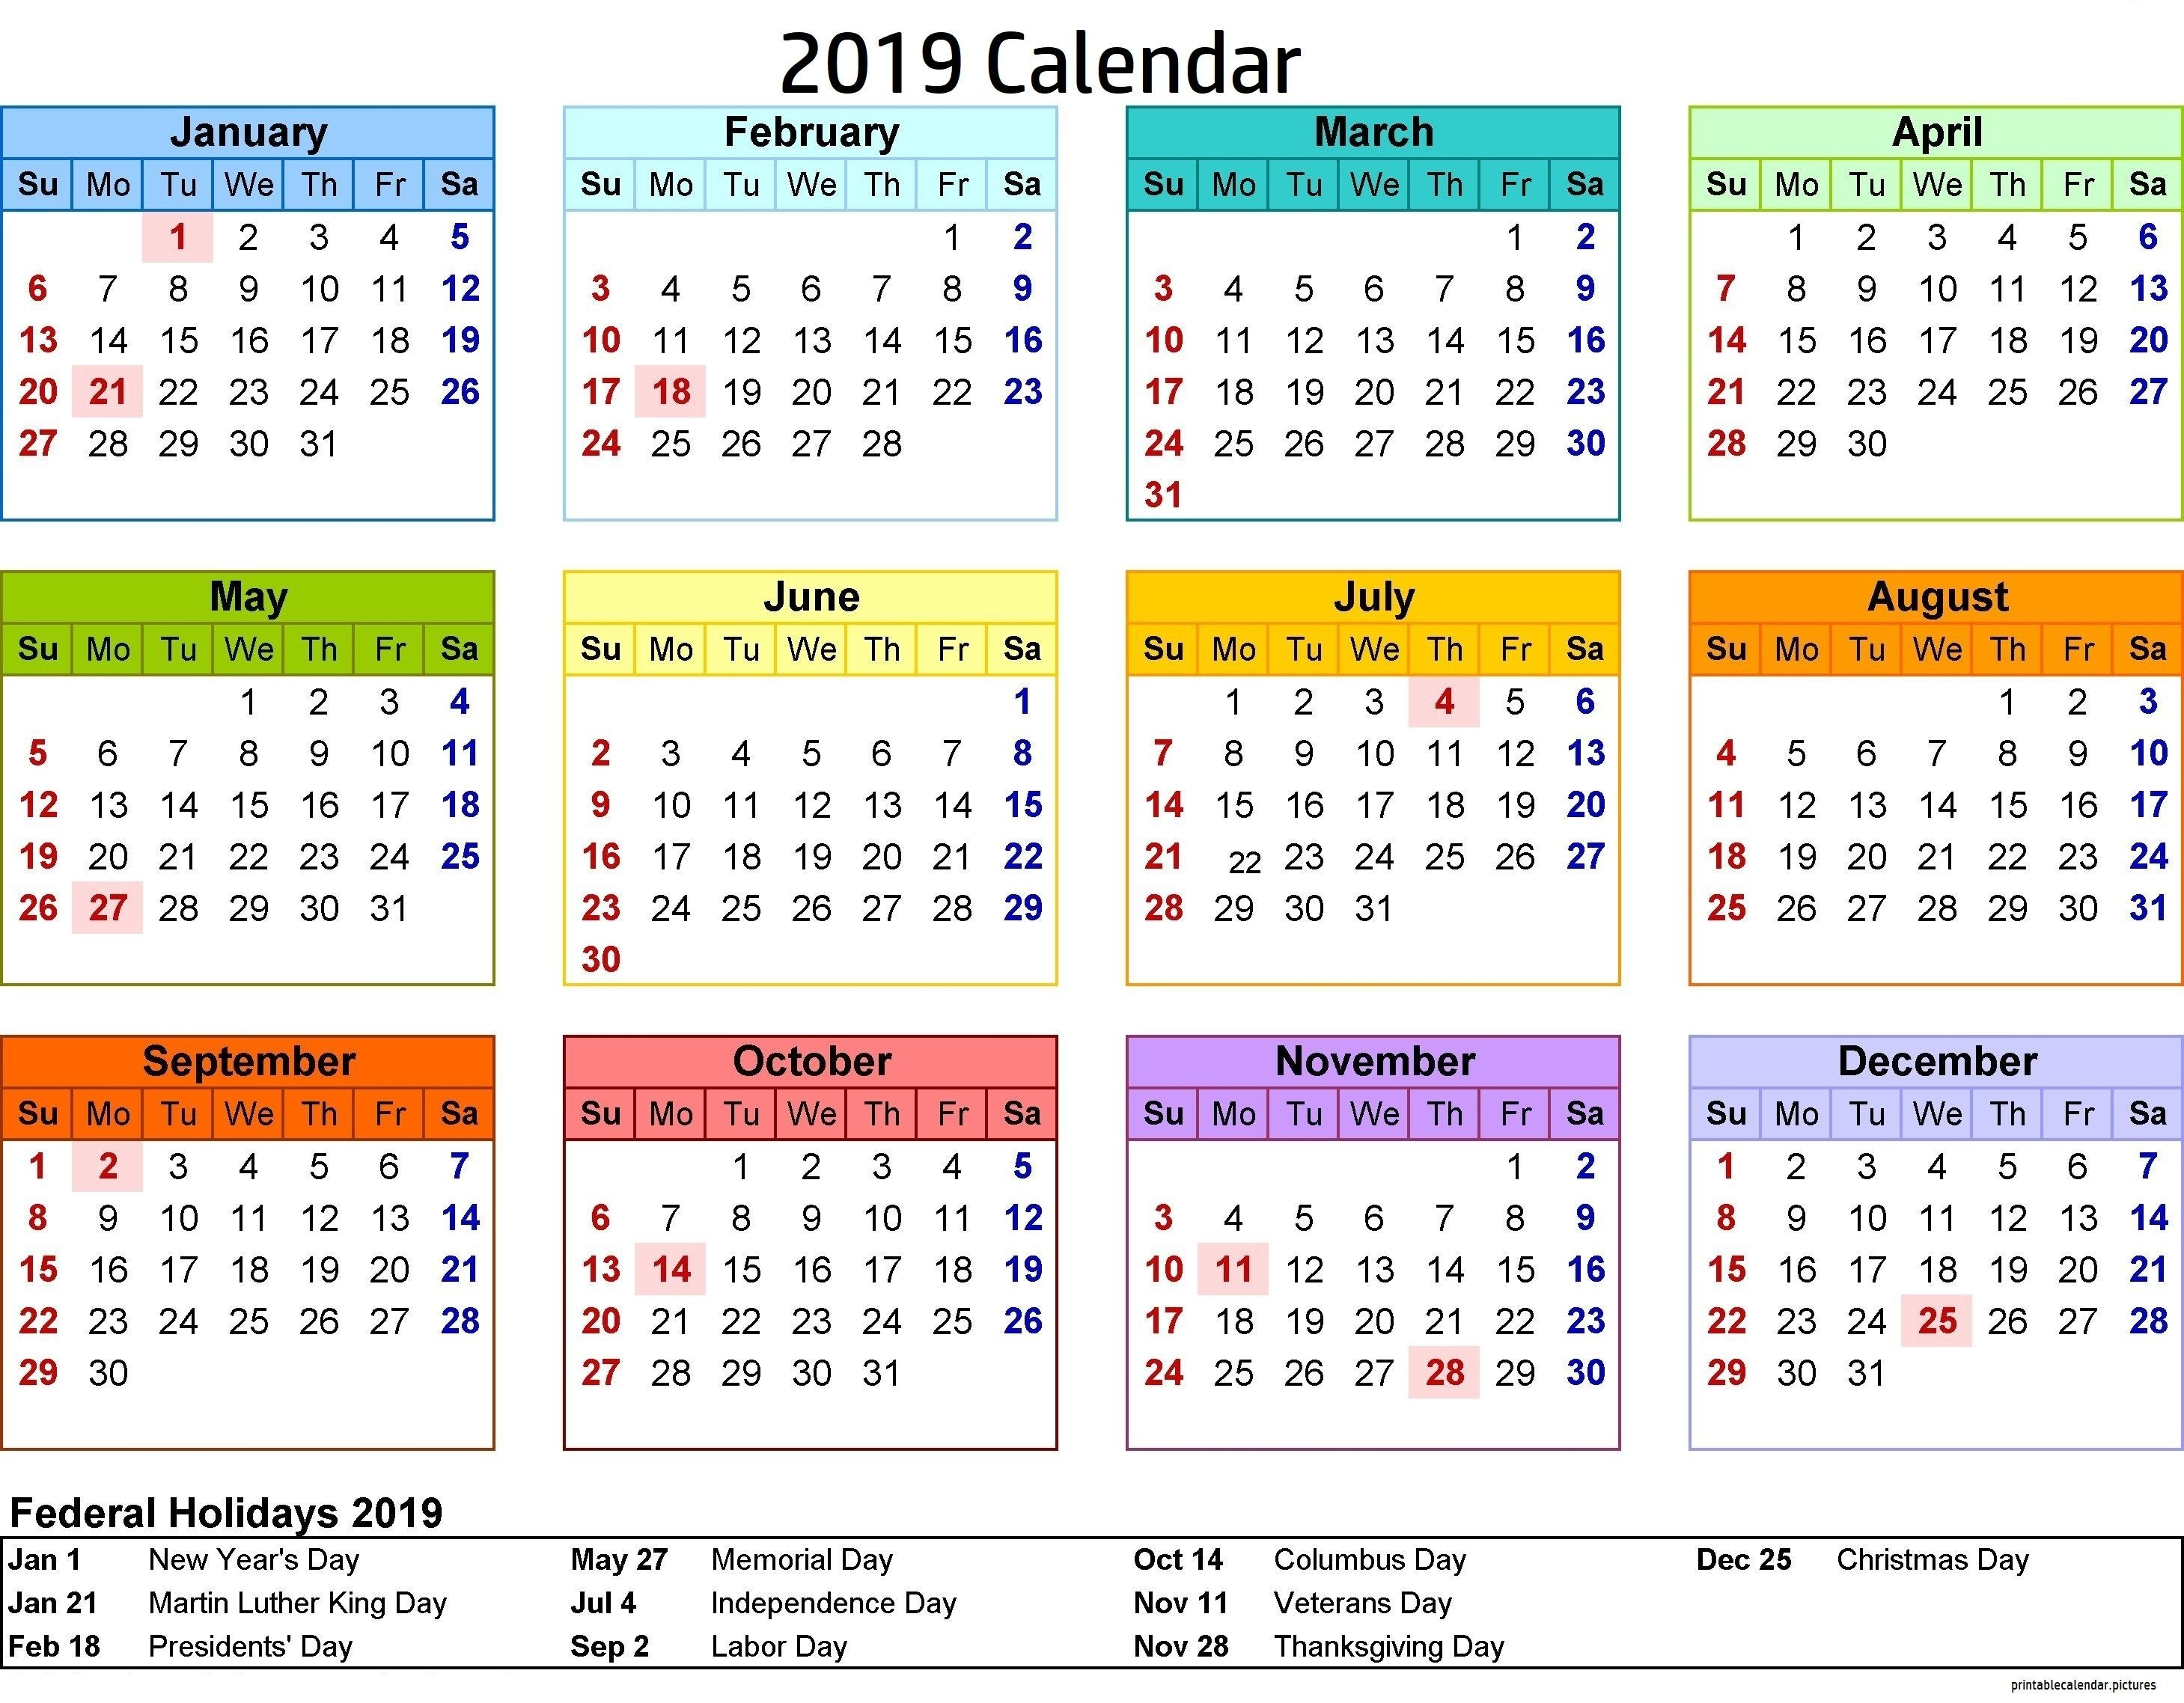 Pin On 2019 Calendar Holidays-Calendar Template With Philippine Holidays